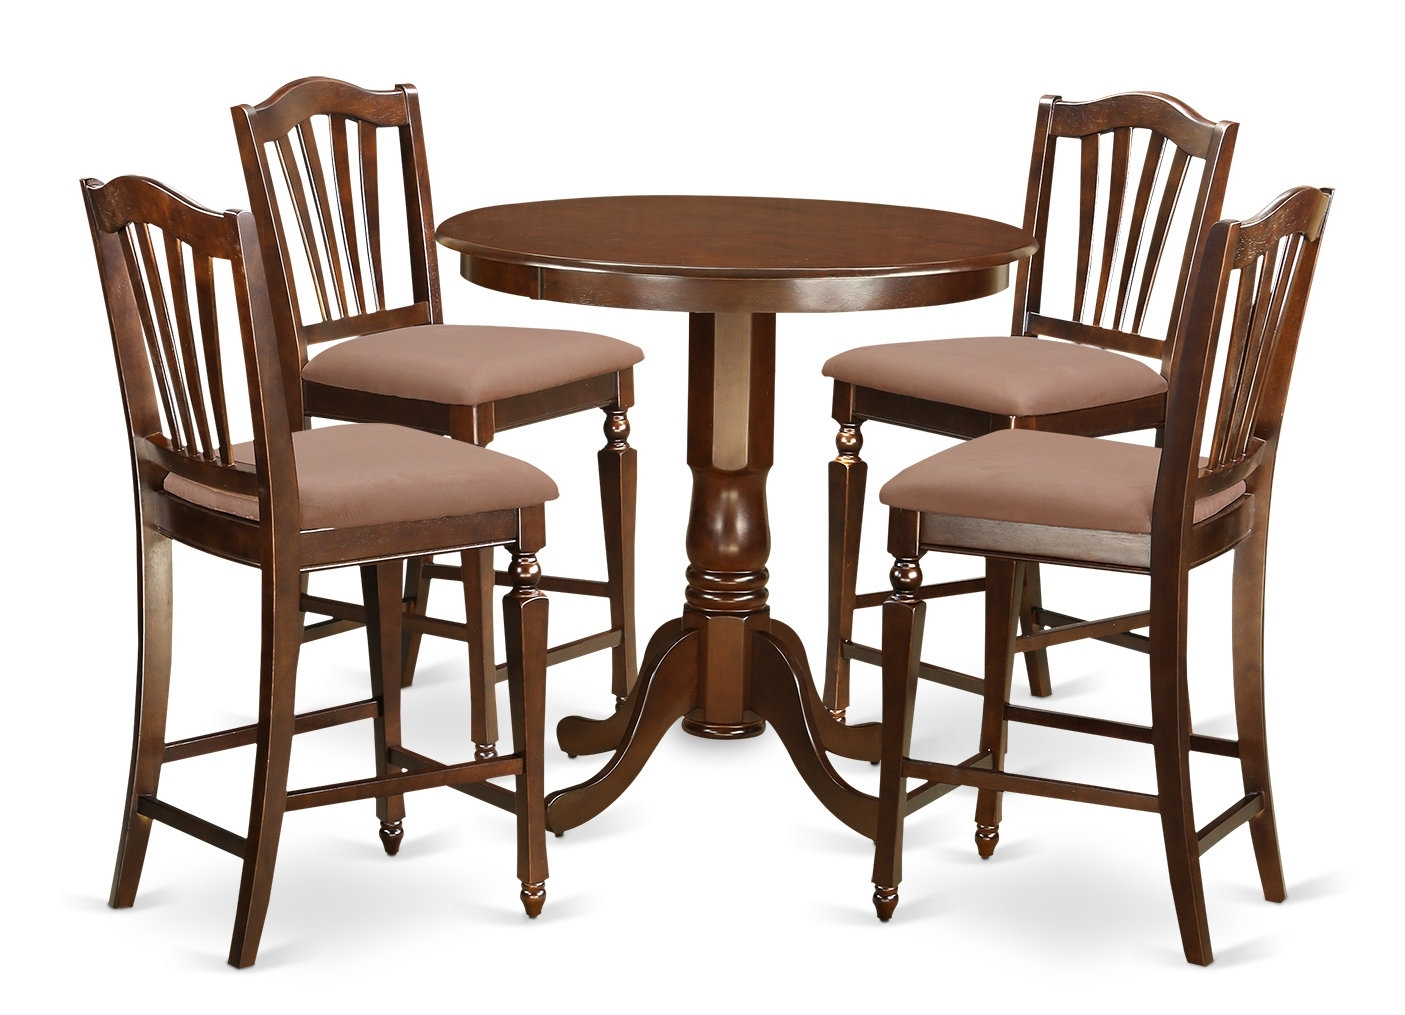 East West Jackson 5 Piece Counter Height Pub Table Set | Wayfair With 2018 Jaxon Grey 6 Piece Rectangle Extension Dining Sets With Bench & Uph Chairs (Image 5 of 20)